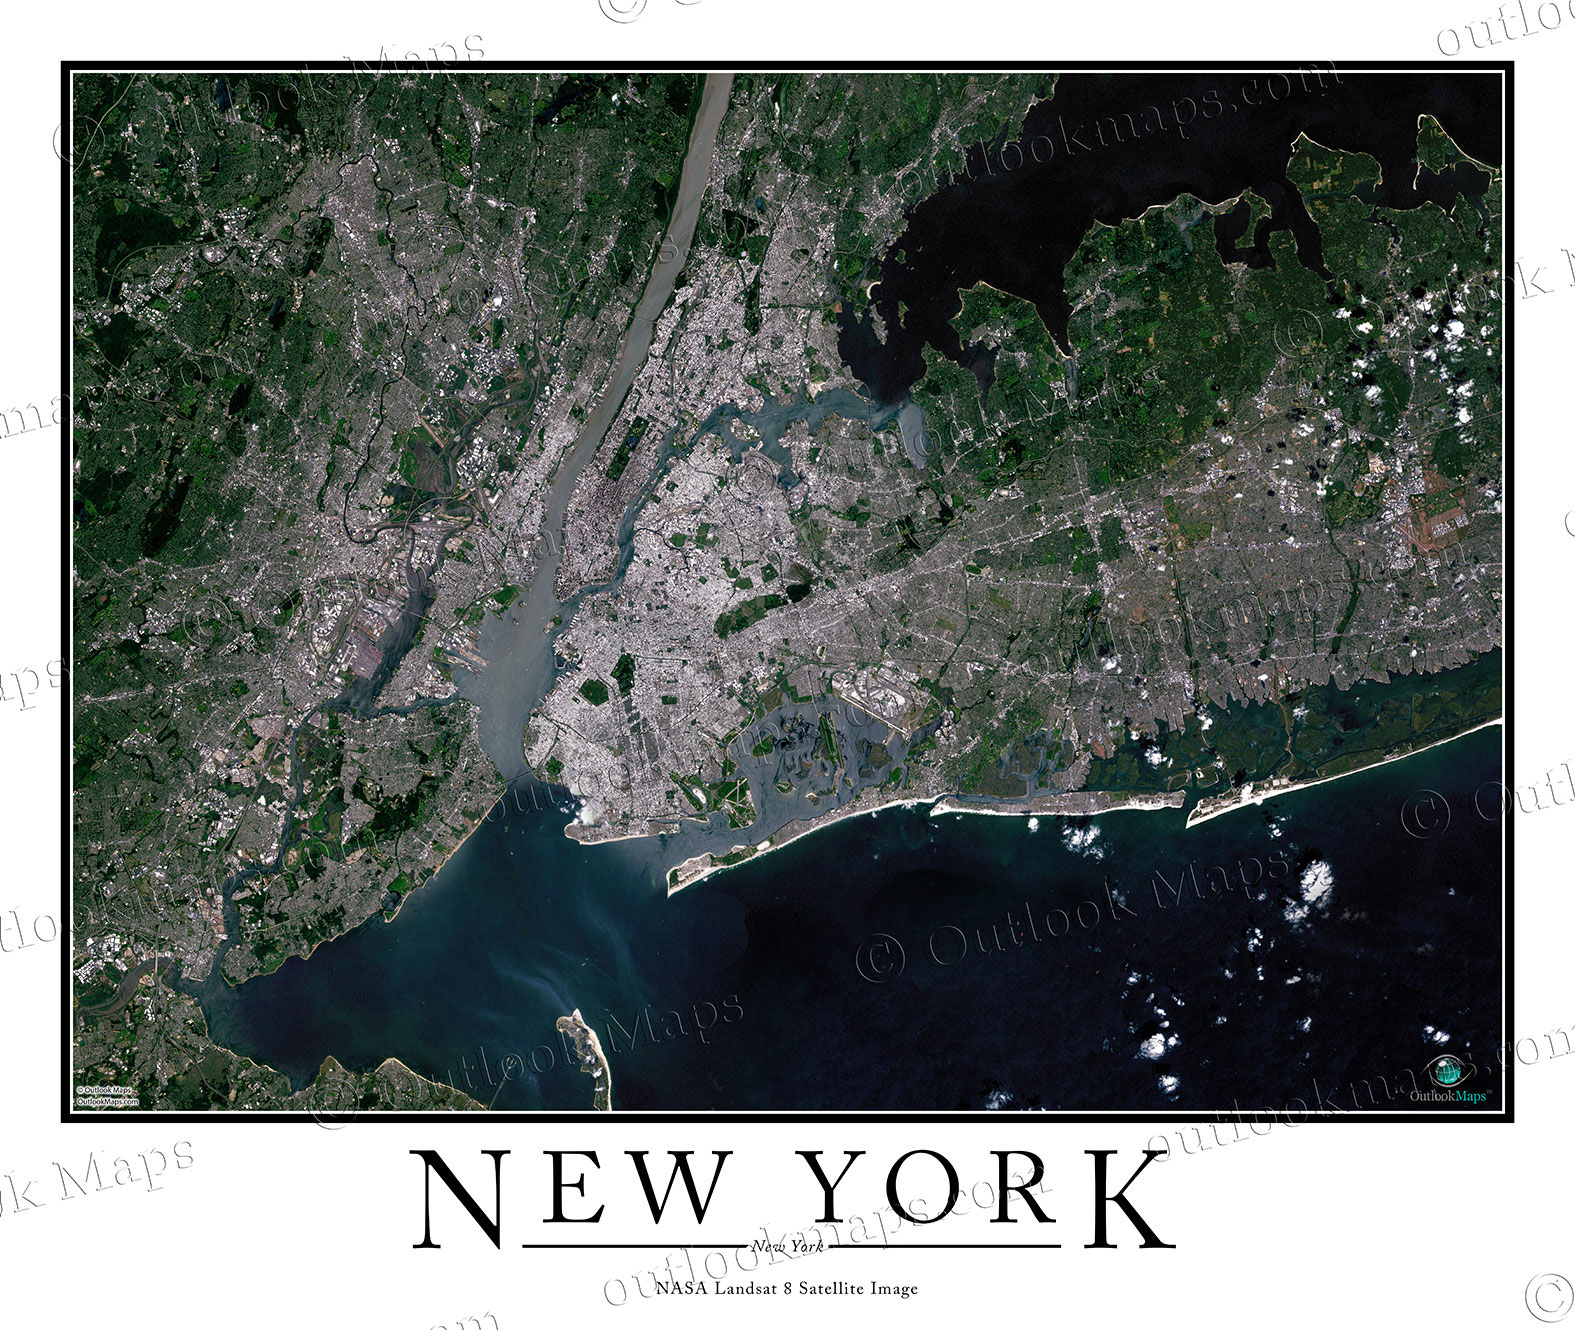 New York City Area Satellite Map Satellite Map Of Boston Neighborhoods on satellite view of a vietnam, aerial view of neighborhoods, atlanta neighborhoods, map of seattle neighborhoods, satellite view of address zoom, satellite view of neighborhood,